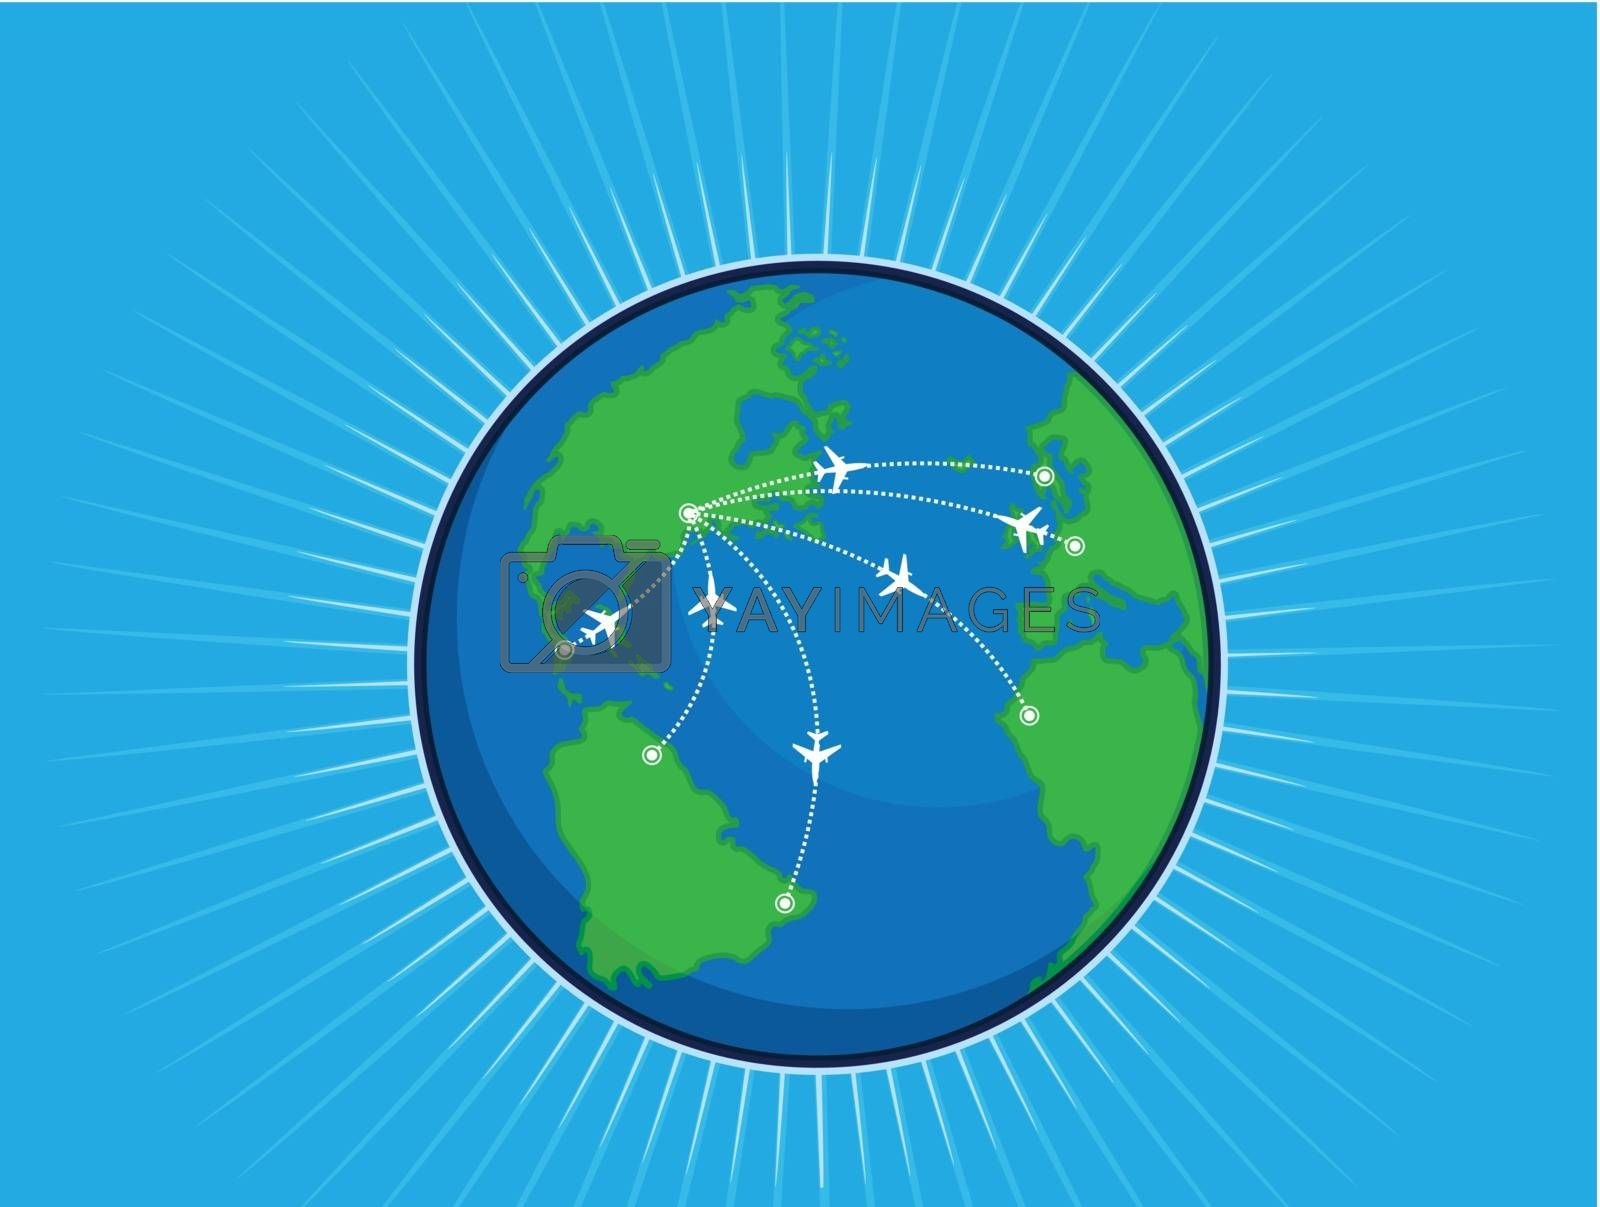 A vector image of an airplane route around the world globe. Good for many application, especially in travel. Available as a Vector in EPS8 format that can be scaled to any size without loss of quality. The graphics elements are all can be moved or edited individually.